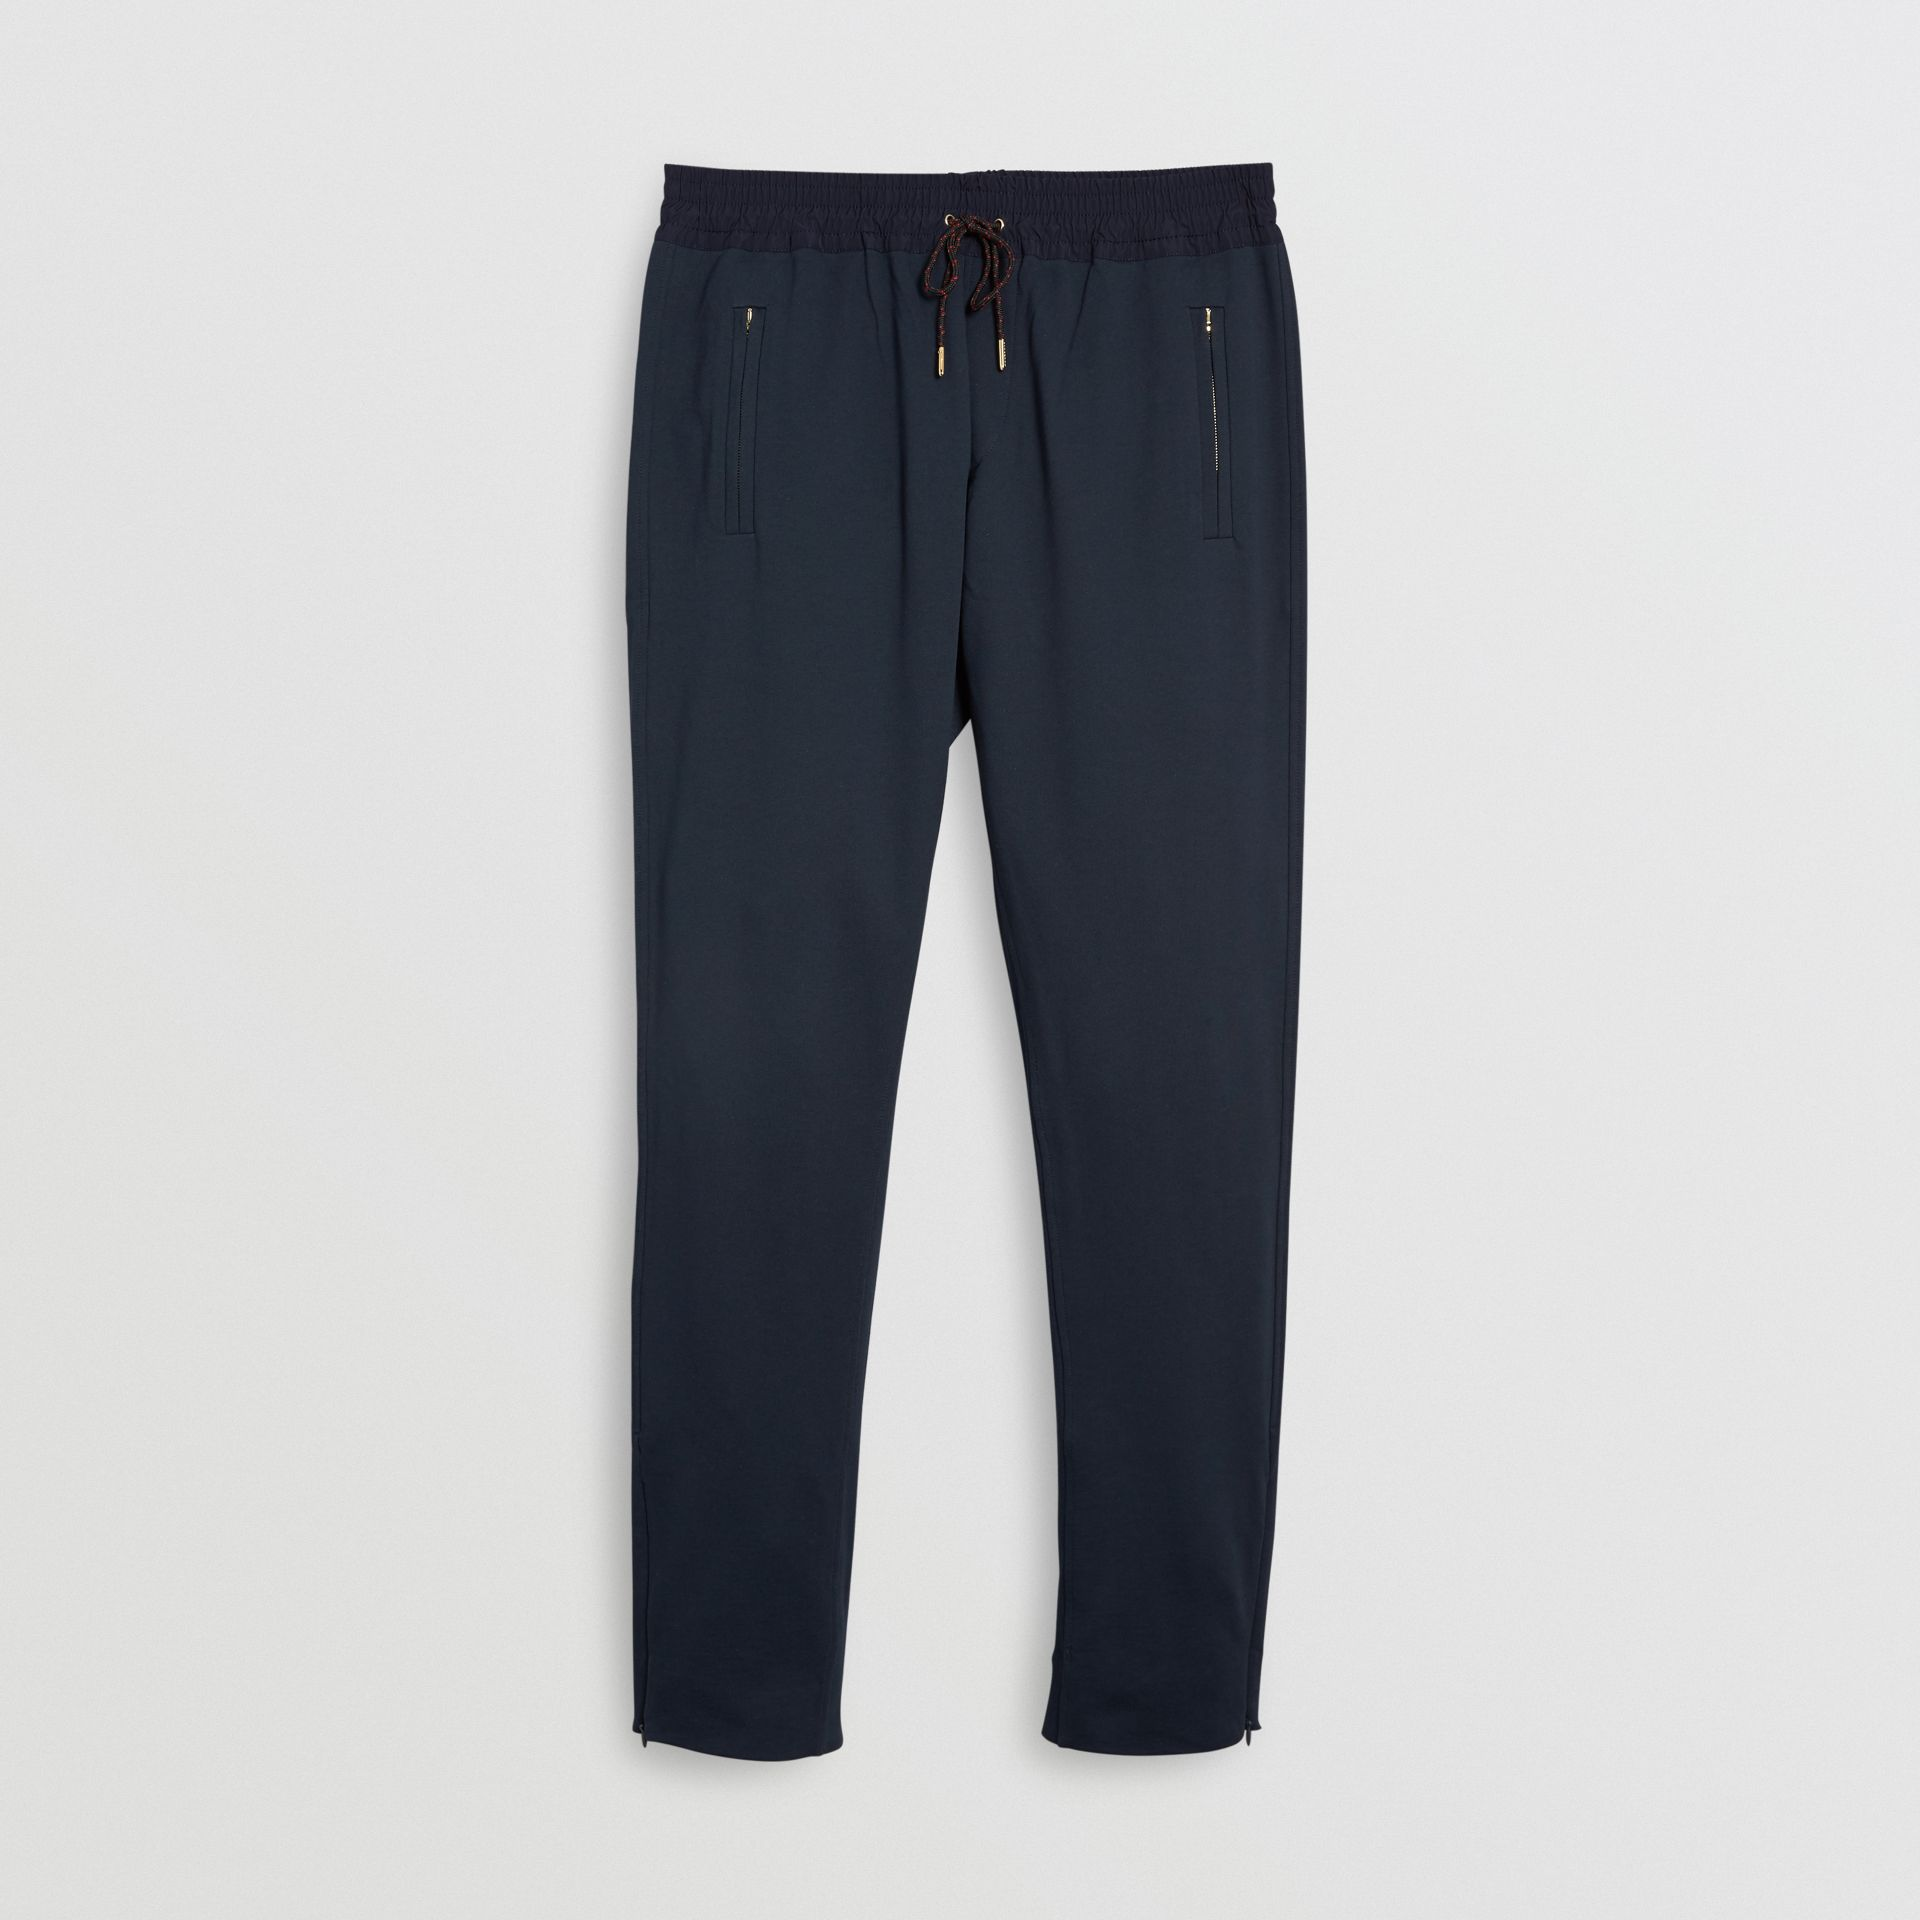 Cotton Sweatpants in Navy - Men | Burberry - gallery image 3